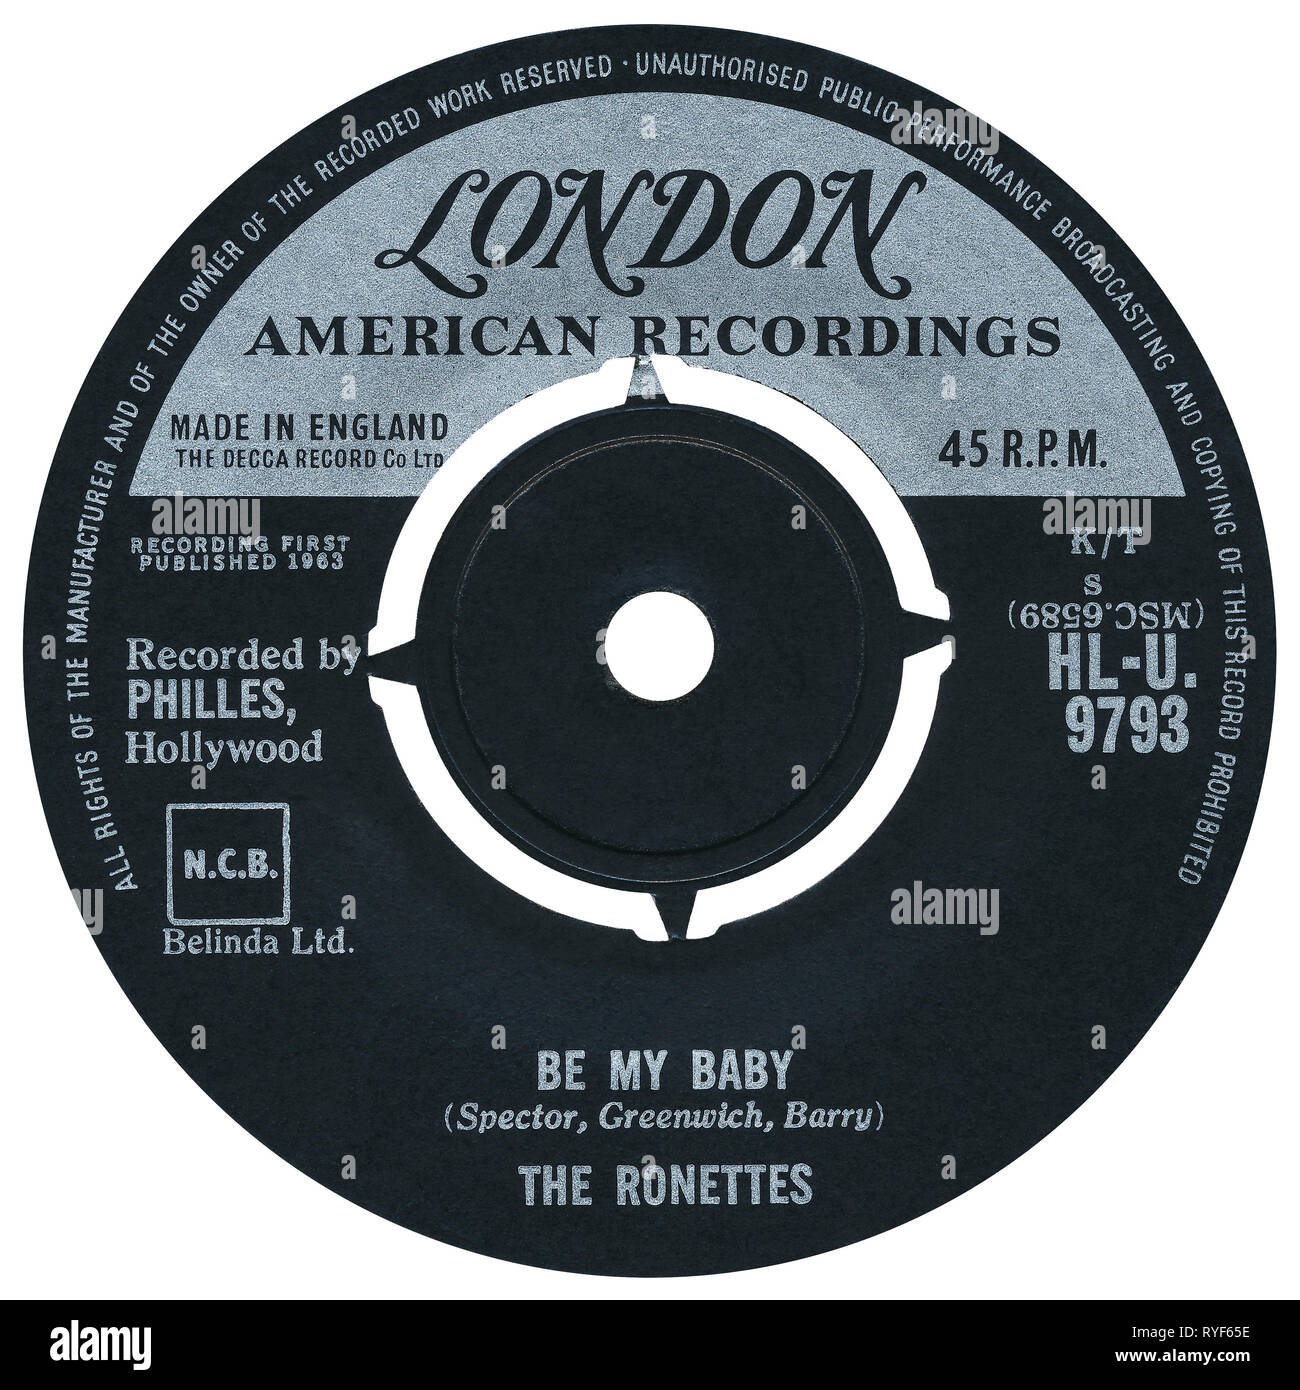 UK 45 rpm single of Be My Baby by The Ronettes on the London label from 1963. Written by Phil Spector, Ellie Greenwich and Jeff Barry, produced by Phil Spector and arranged by Jack Nitzsche. Stock Photo